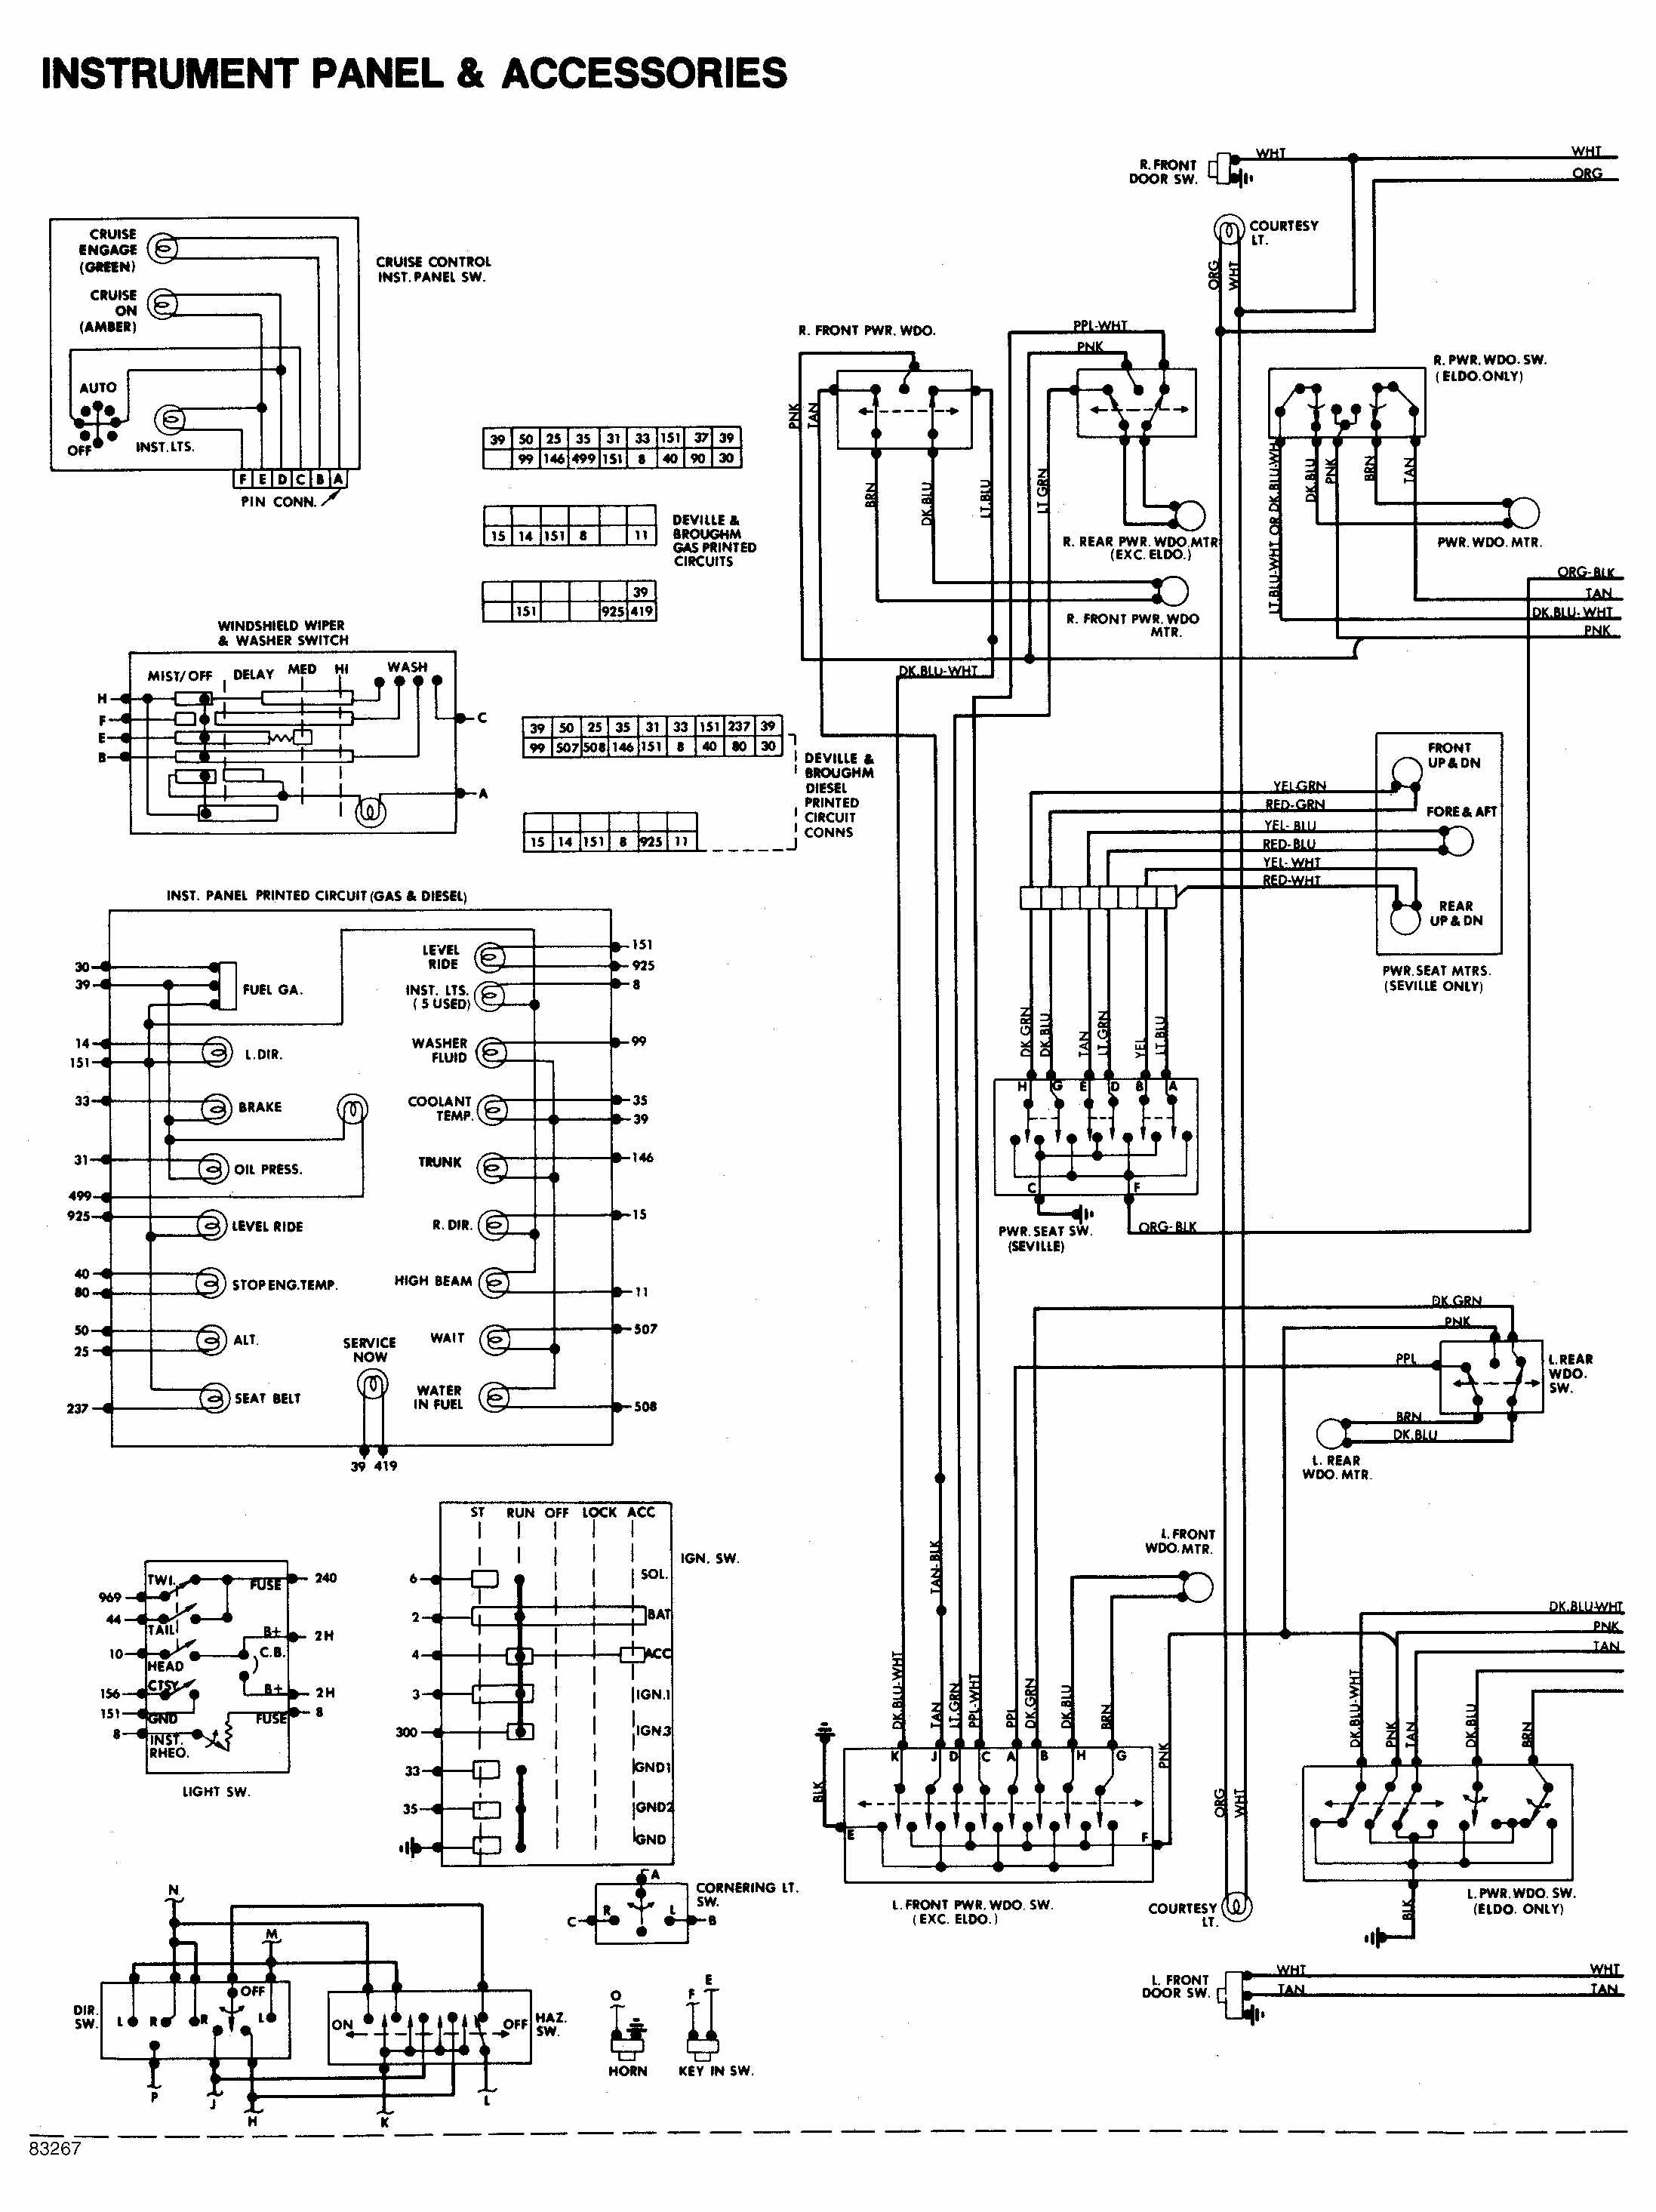 [ANLQ_8698]  2012 Cadillac Xts Wiring Diagram Diagram Base Website Wiring Diagram -  BLANKHEARTDIAGRAM.GALLERIALATORRE.IT | Cadillac Ats Headlight Wiring Diagram |  | Diagram Base Website Full Edition - gallerialatorre.it